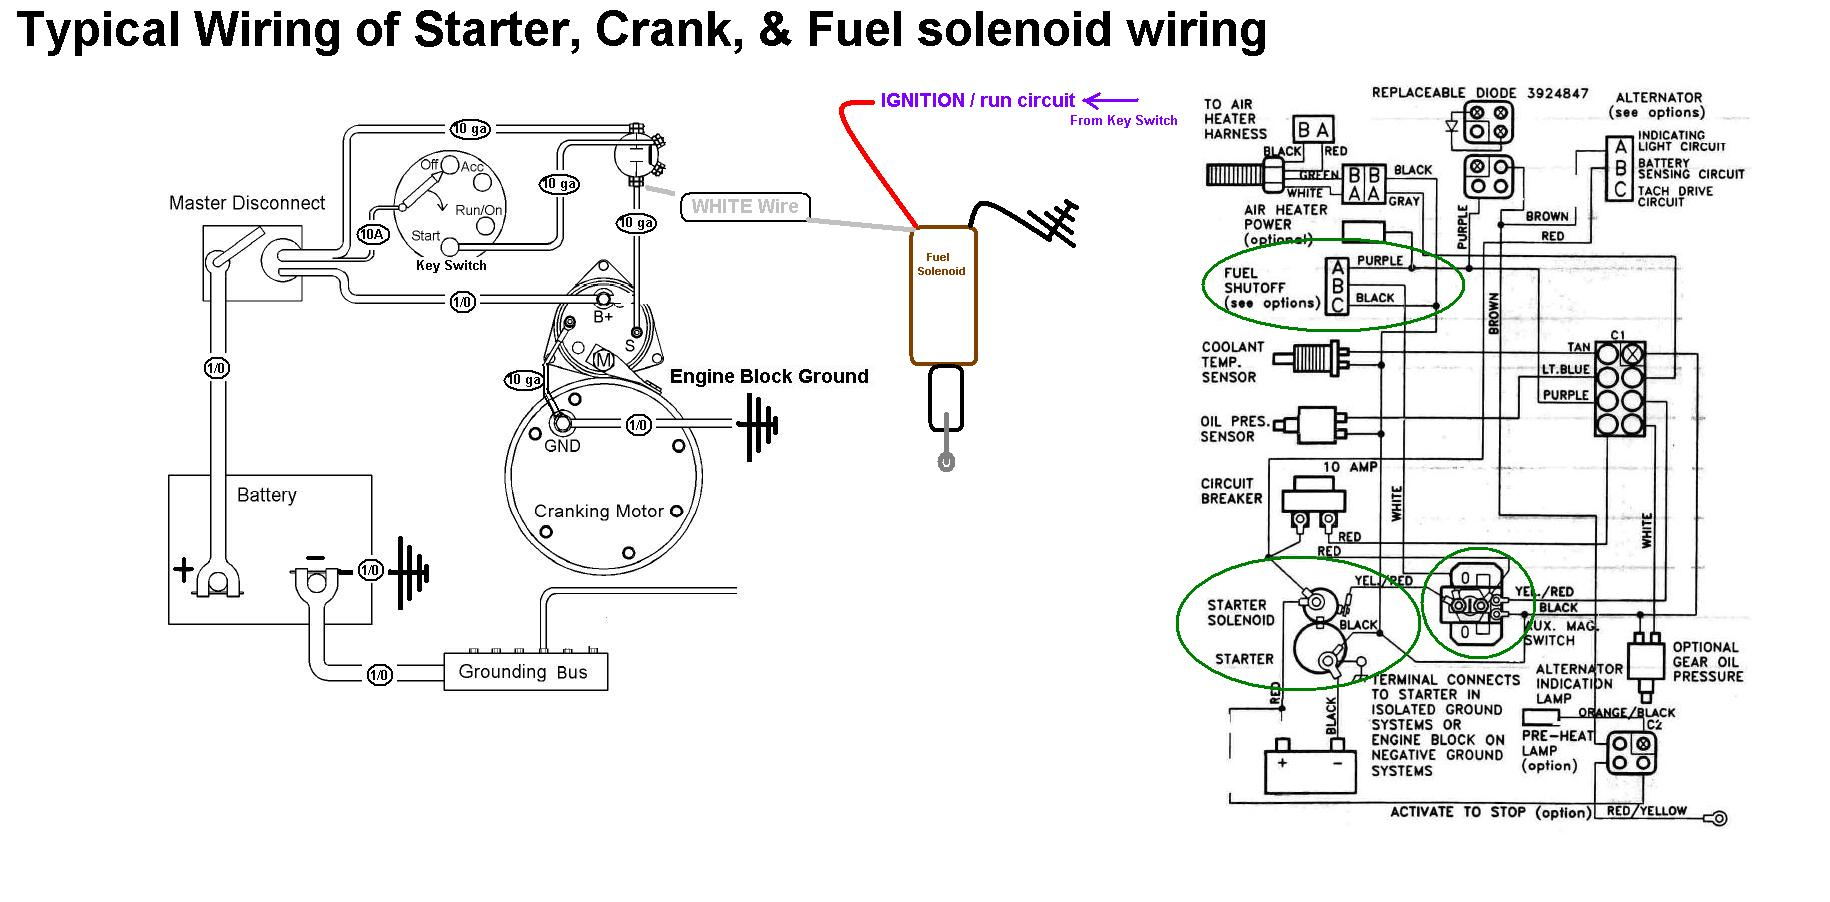 3 Wire Solenoid Diagram | Wiring Diagrams  Pole Solenoid Wiring Diagrams On The Firewall on 3 pole switch wiring diagrams, 3 pole relay diagram, 3 pole starter solenoid, contactors and relays diagrams, 3 phase motor wiring diagrams,